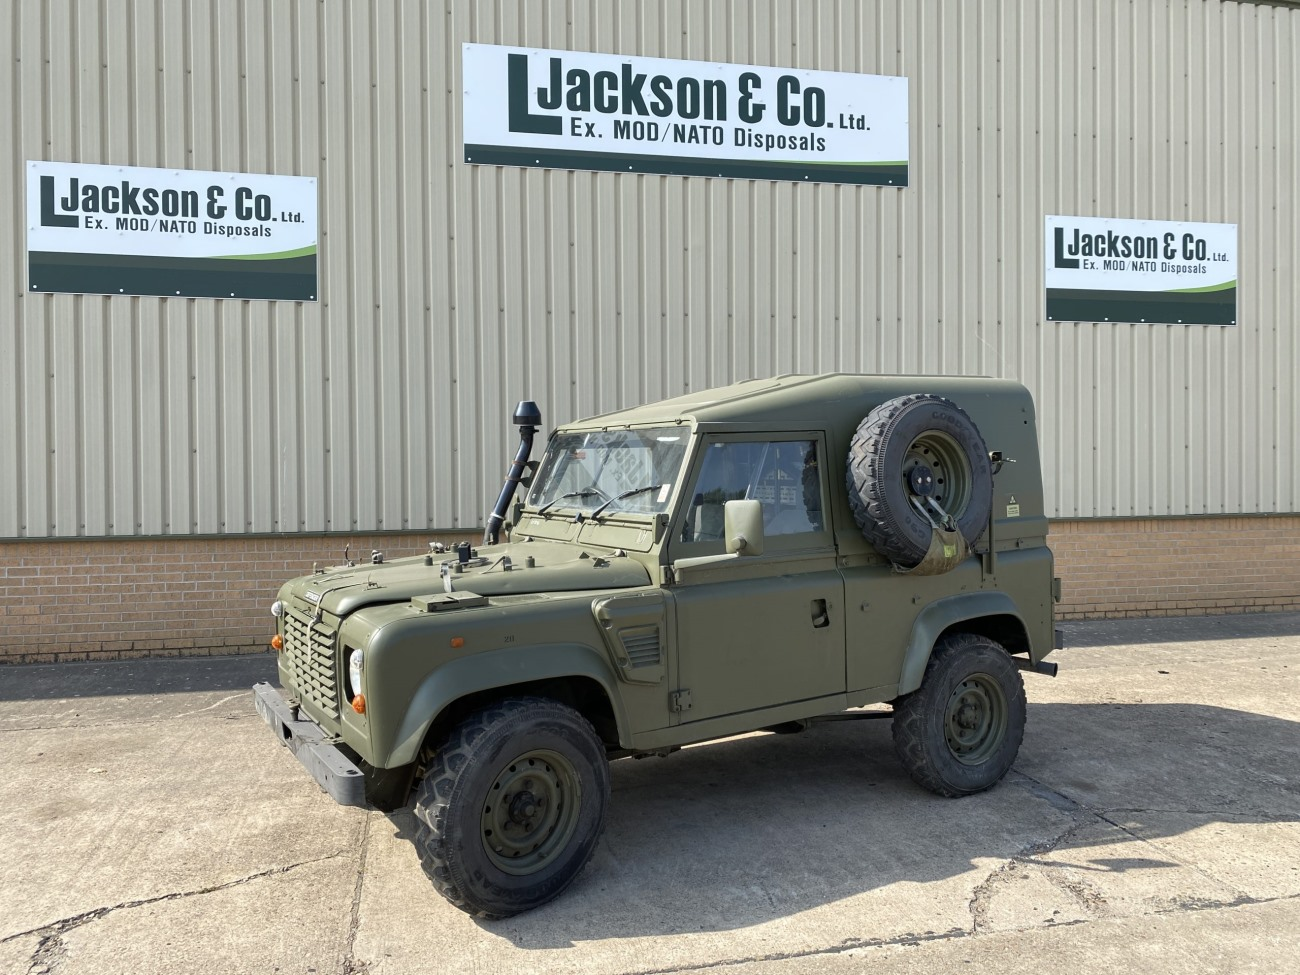 Land Rover Defender 90 Wolf RHD Hard Top Remus | Military Land Rovers 90, 110,130, Range Rovers, Mercedes for Sale